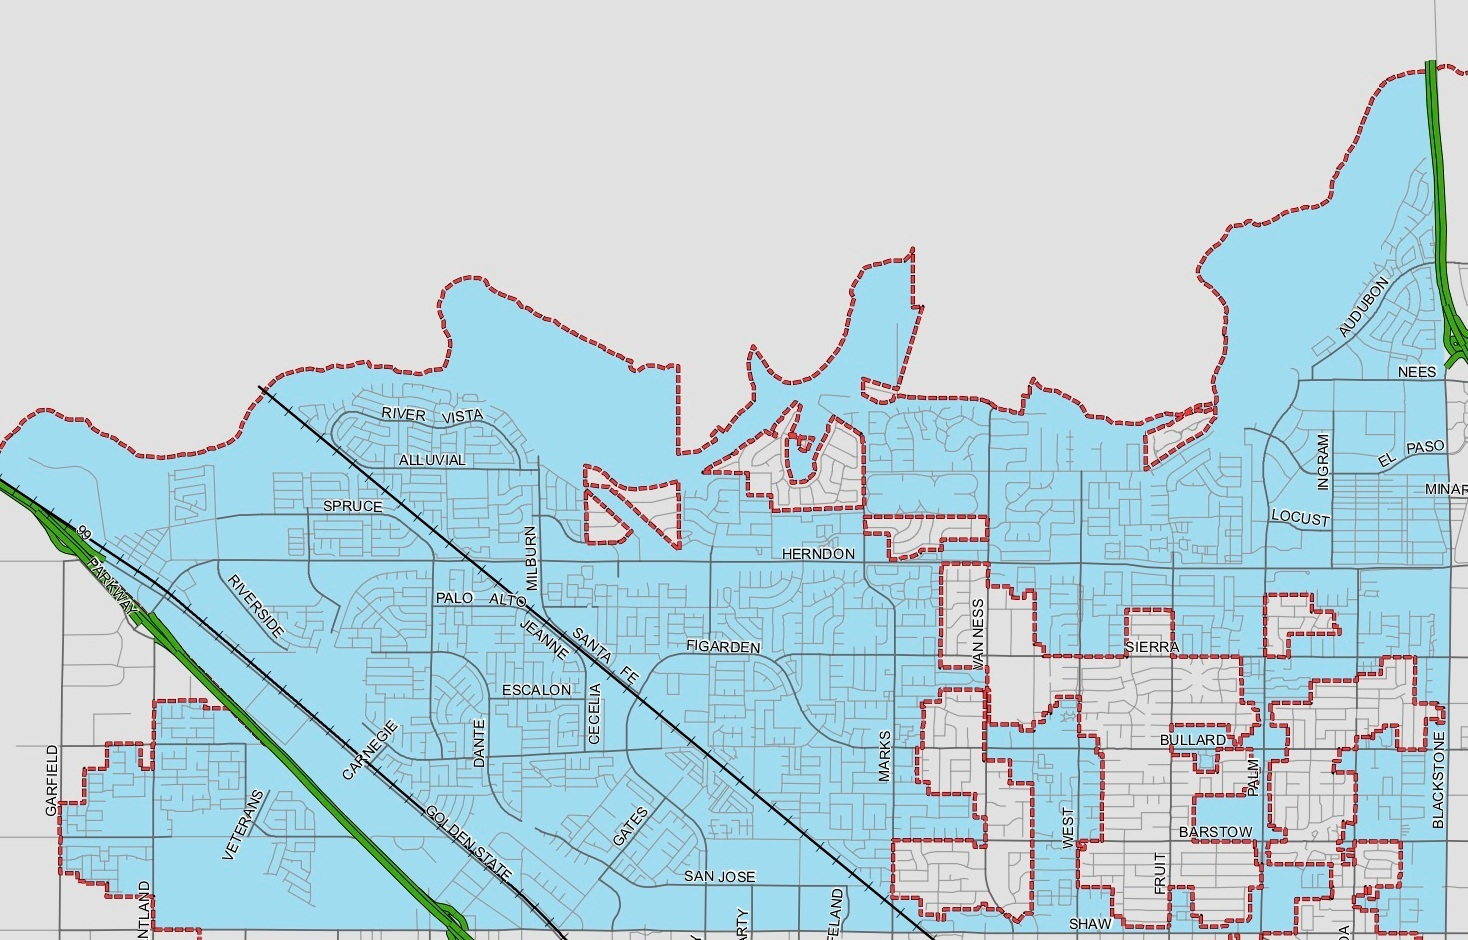 Homes in the blue are in district 2 (Turn screen if using cell phone)